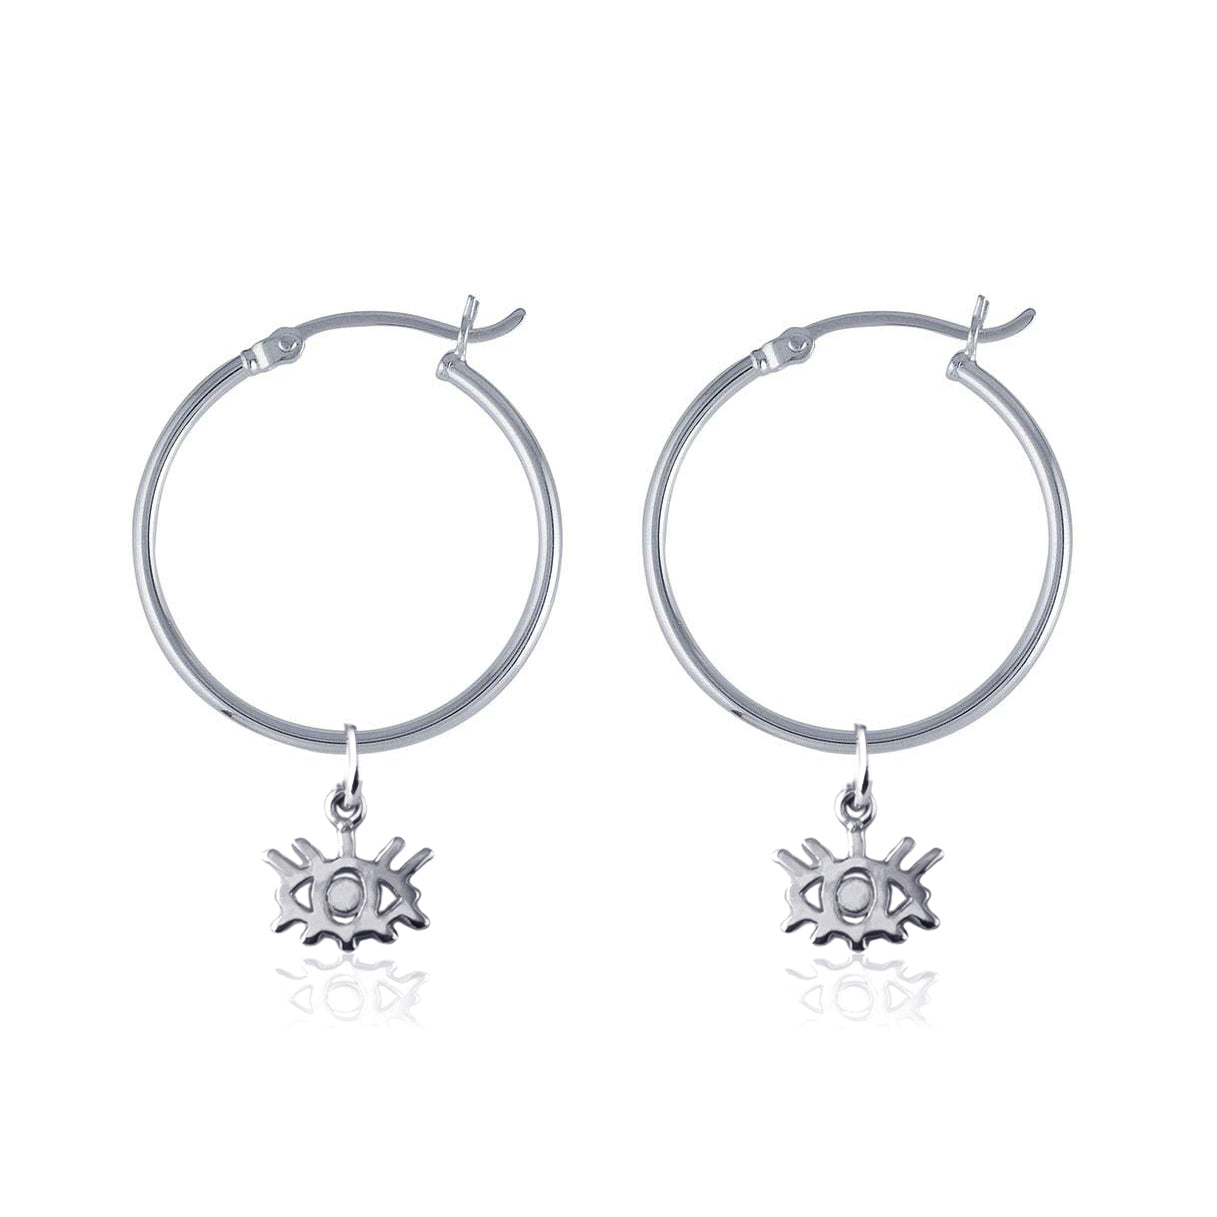 Hoop Earrings - Eye Wish You Were Here (Silver)